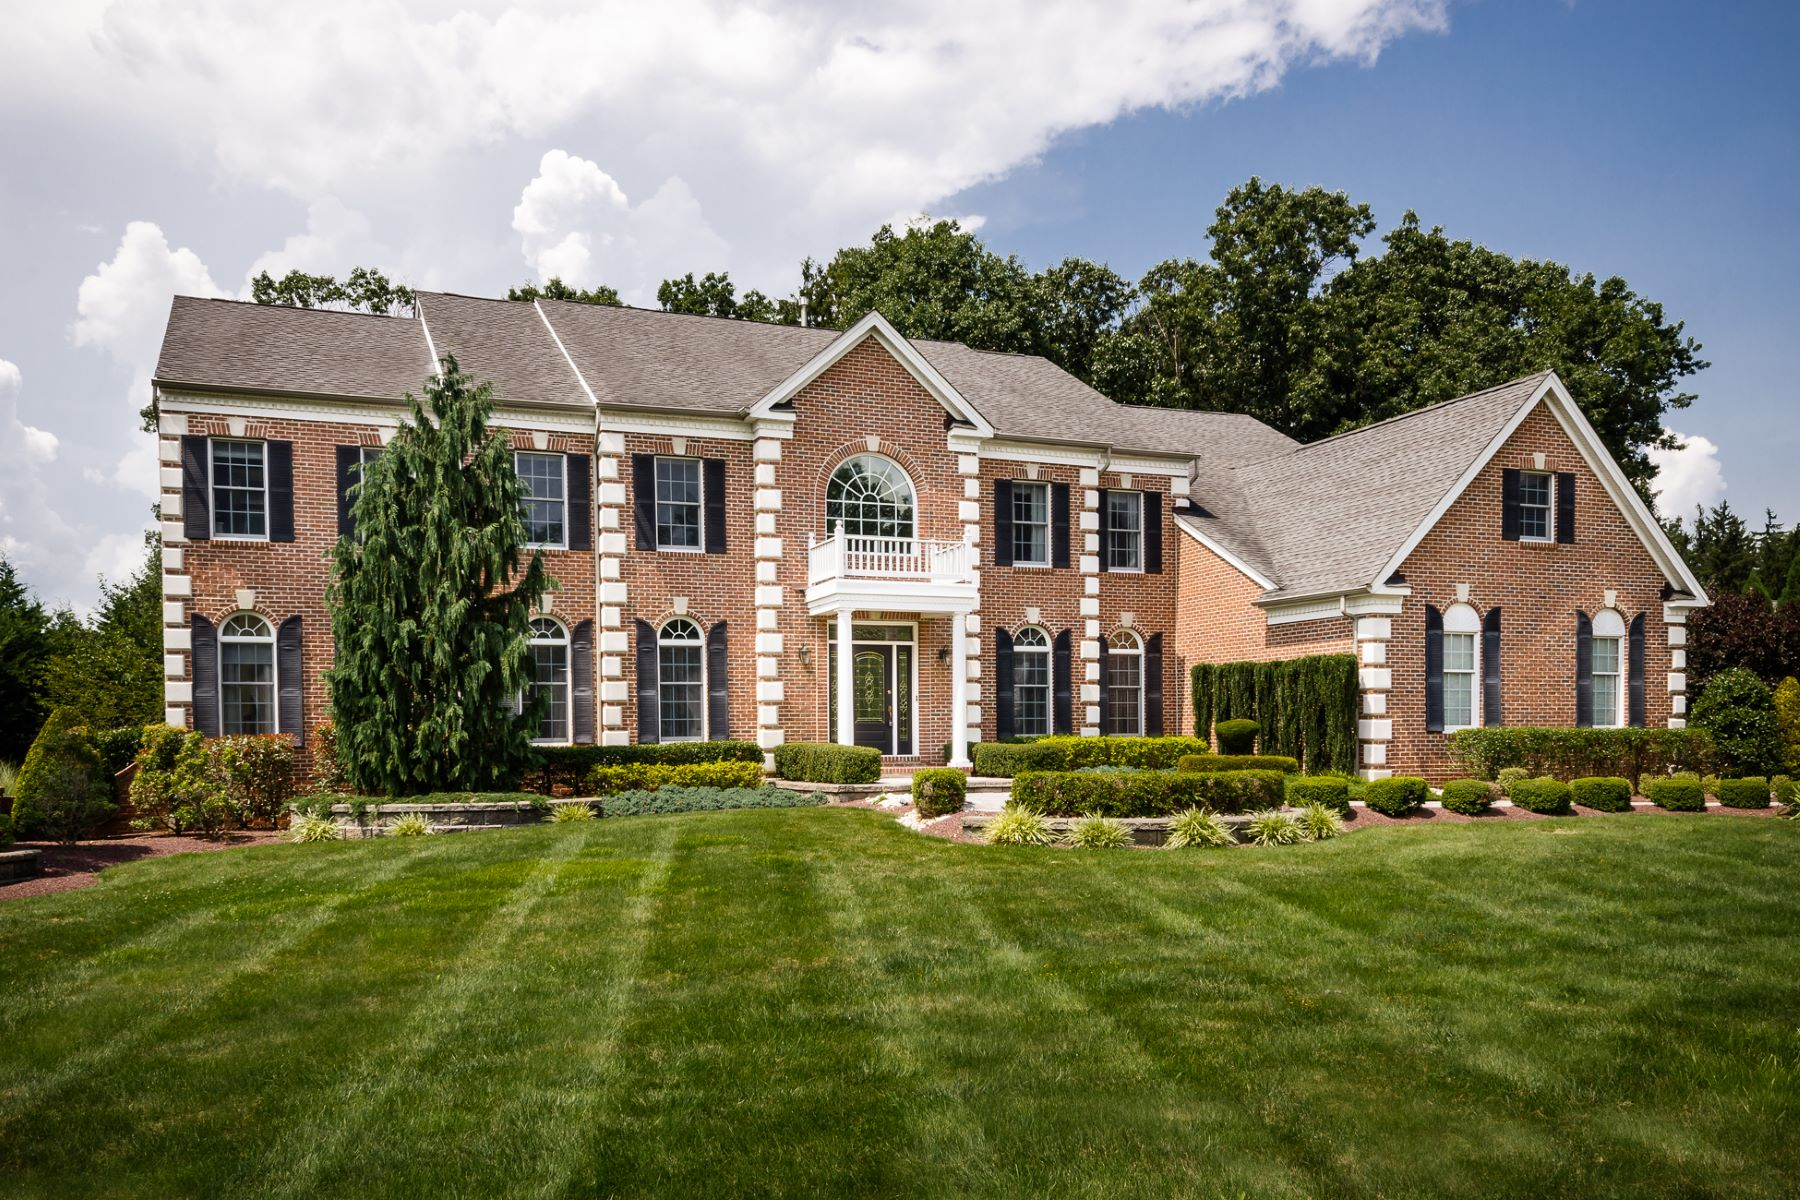 Casa Unifamiliar por un Venta en Cranbury Colonial Celebrates Toll Brothers Luxury 14 Shady Brook Lane Cranbury, Nueva Jersey 08512 Estados UnidosEn/Alrededor: Cranbury